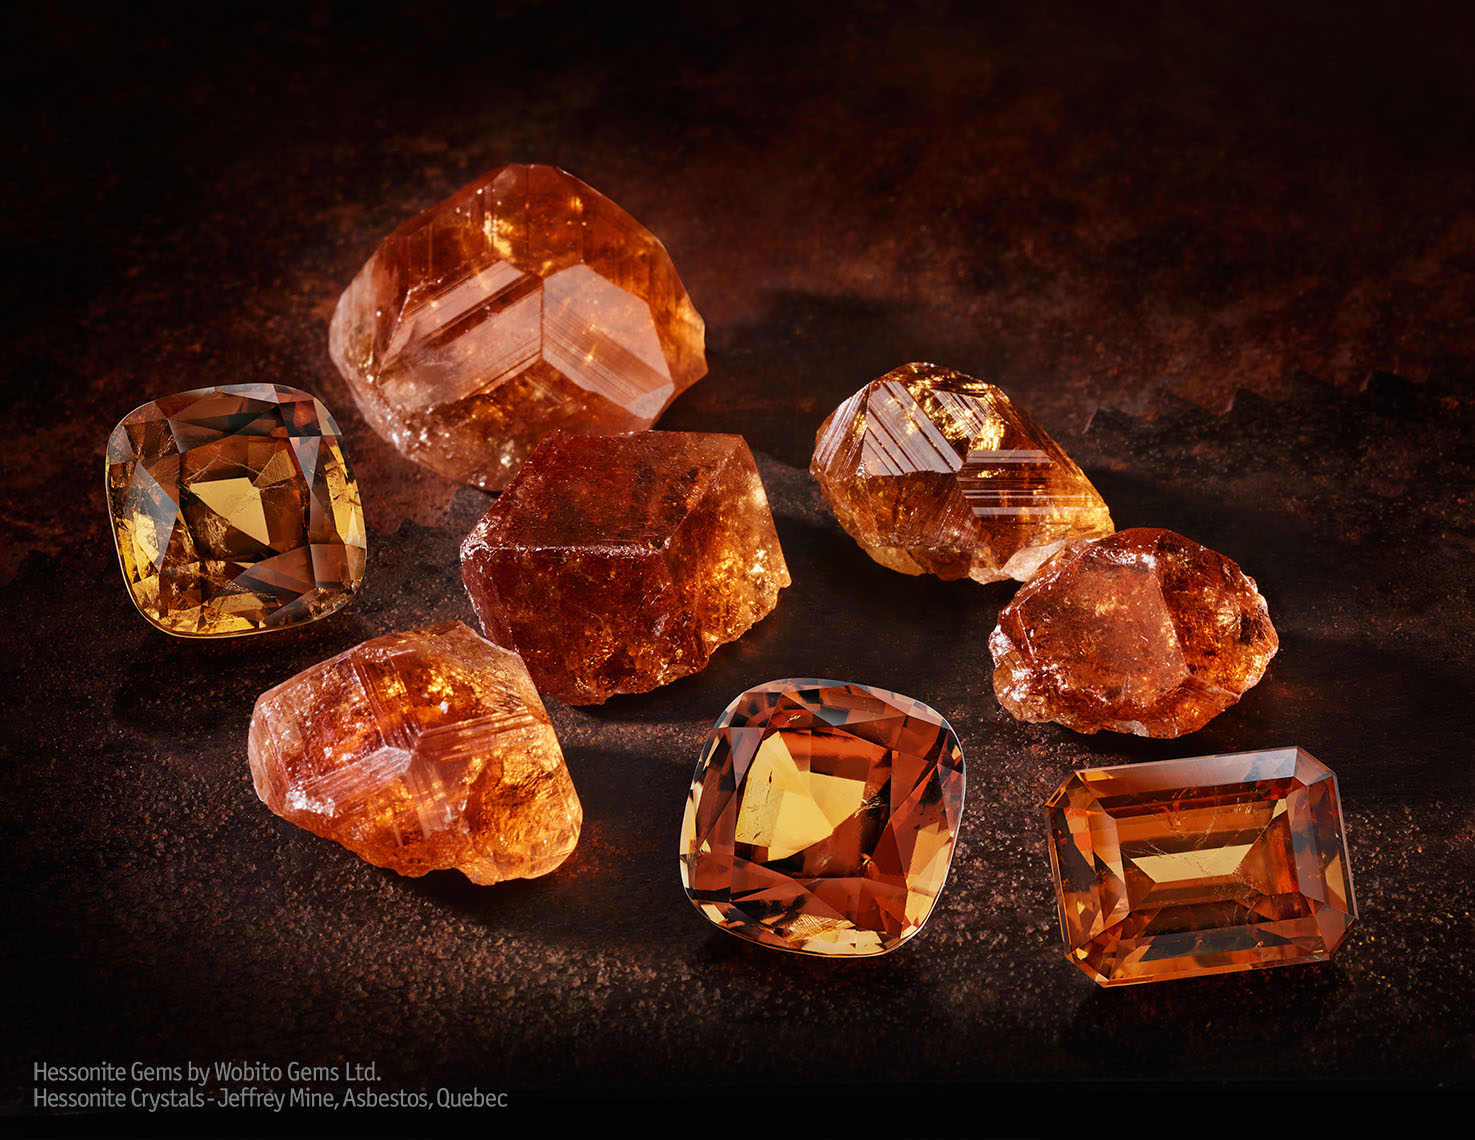 Hessonite, Gems, Hessonite Rough Gem